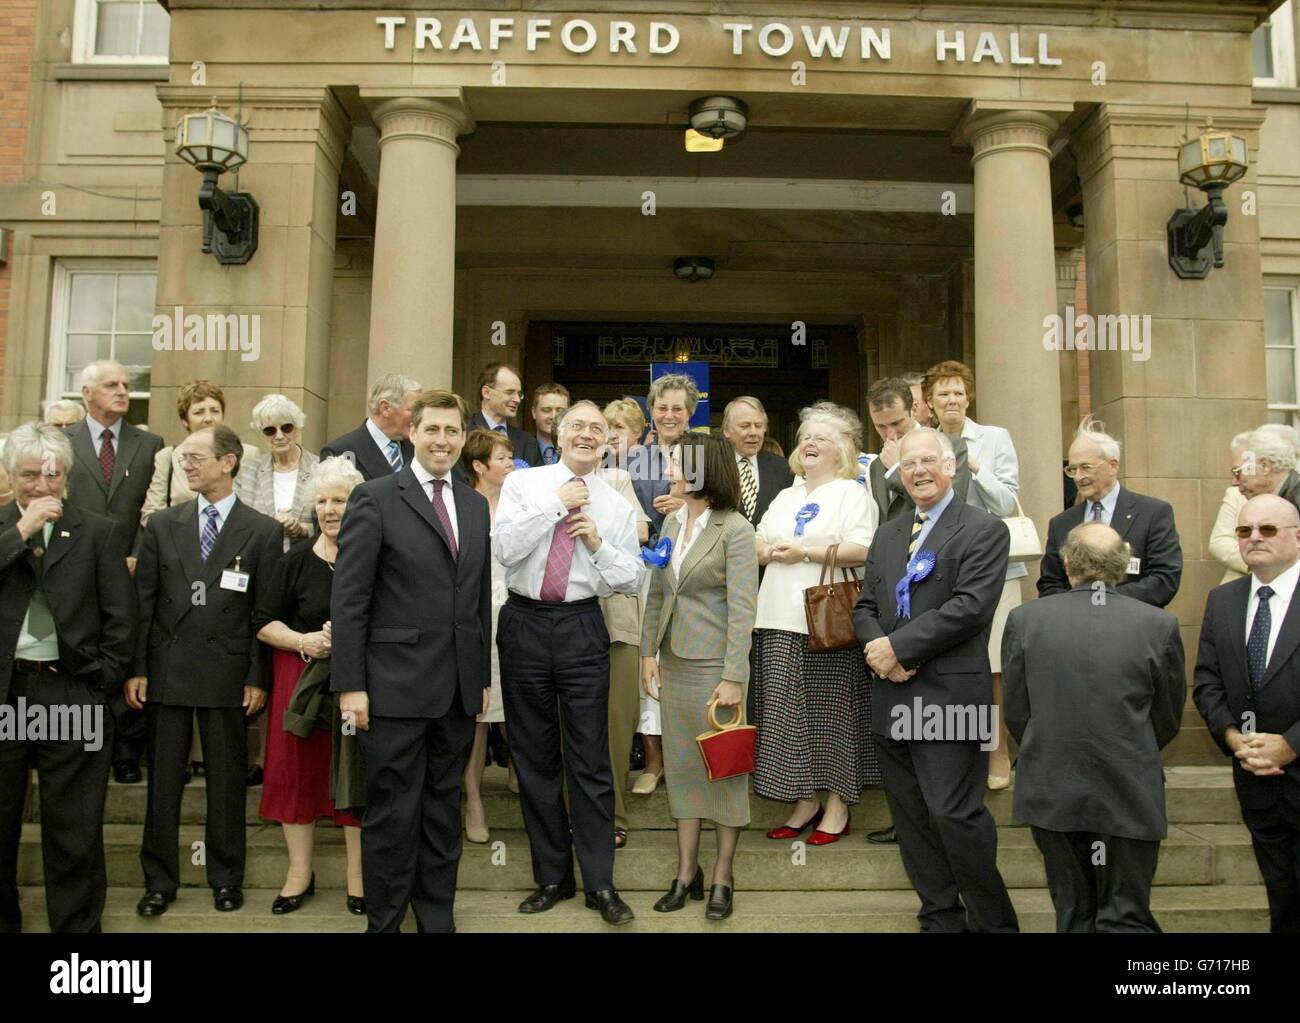 Howard Trafford Town Hall - Stock Image